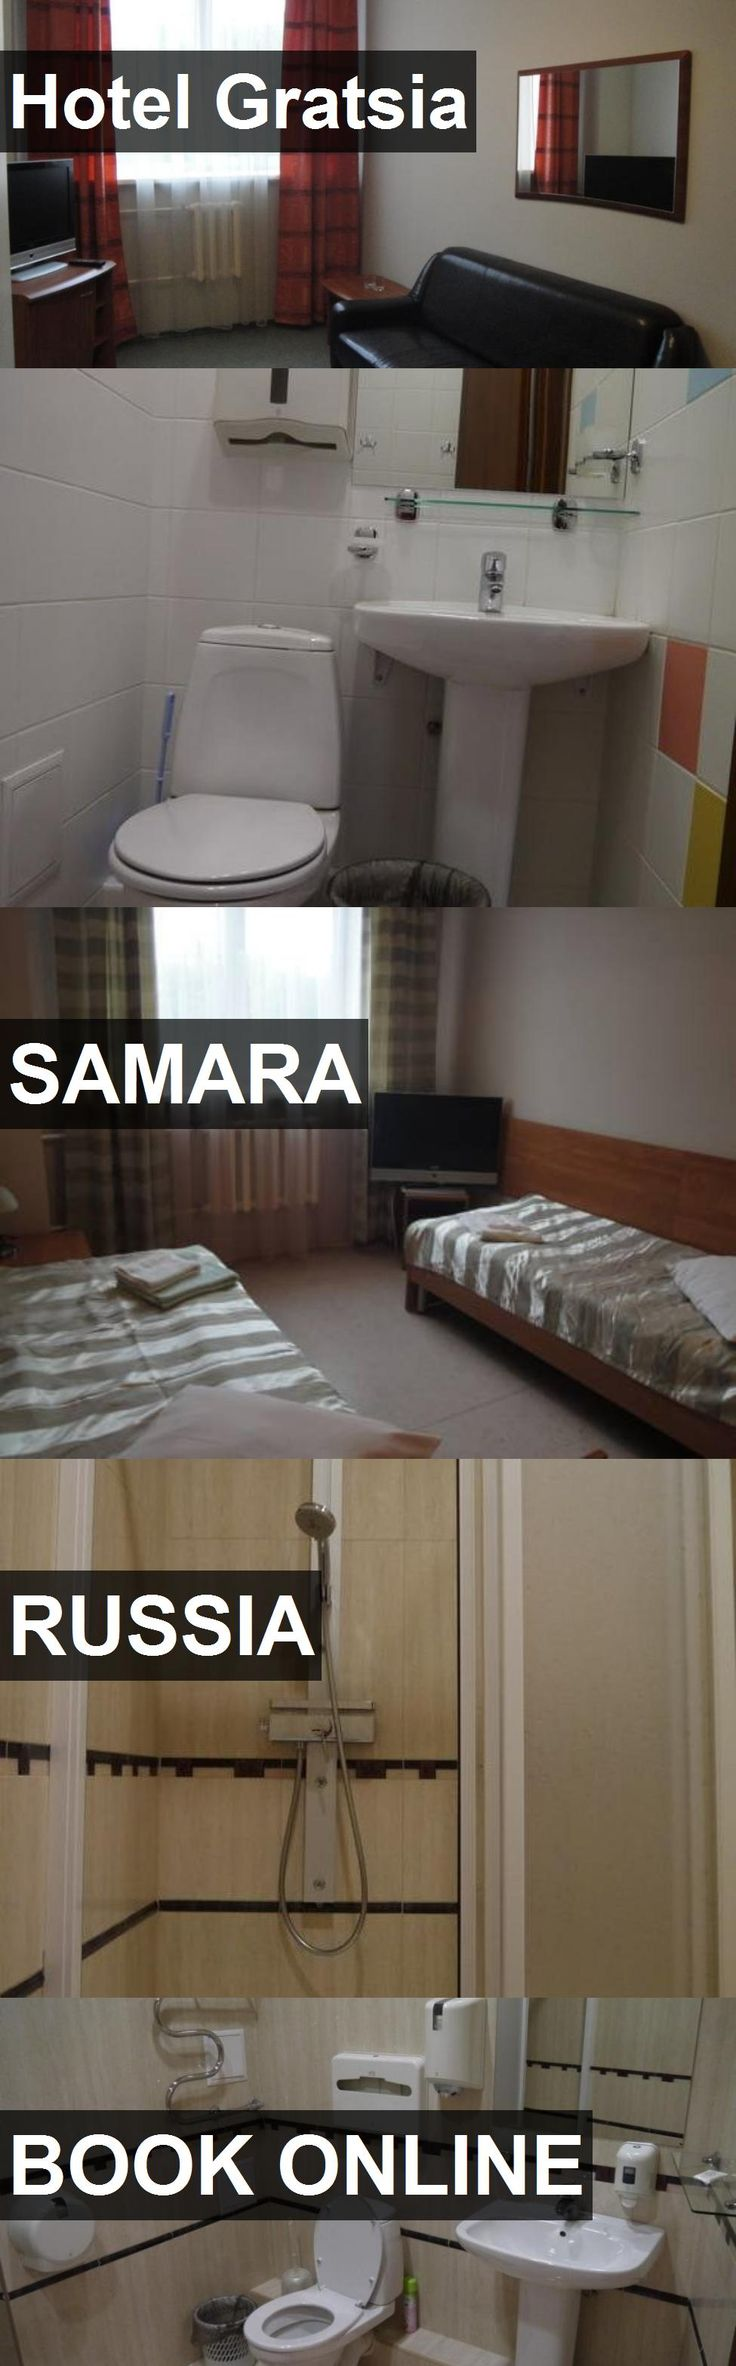 Hotel Gratsia in Samara, Russia. For more information, photos, reviews and best prices please follow the link. #Russia #Samara #travel #vacation #hotel